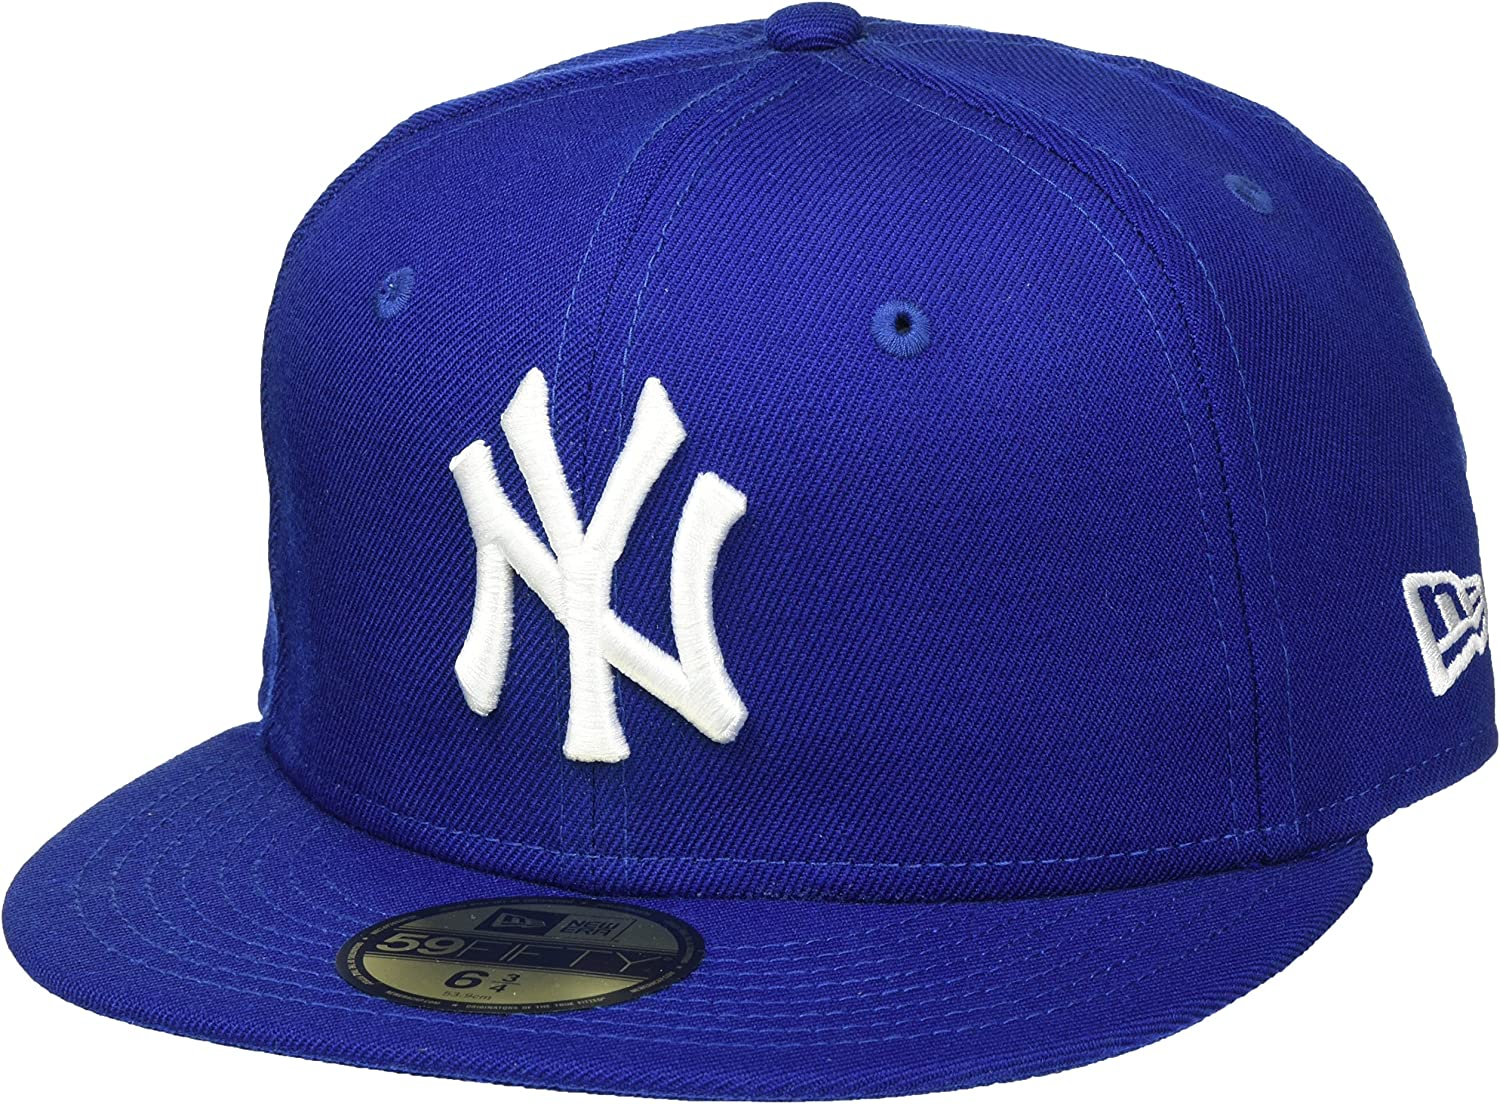 New Era Mlb Basic New York Yankees, Gorro para Hombre, Azul (roy/whi), 8 0/0 inch